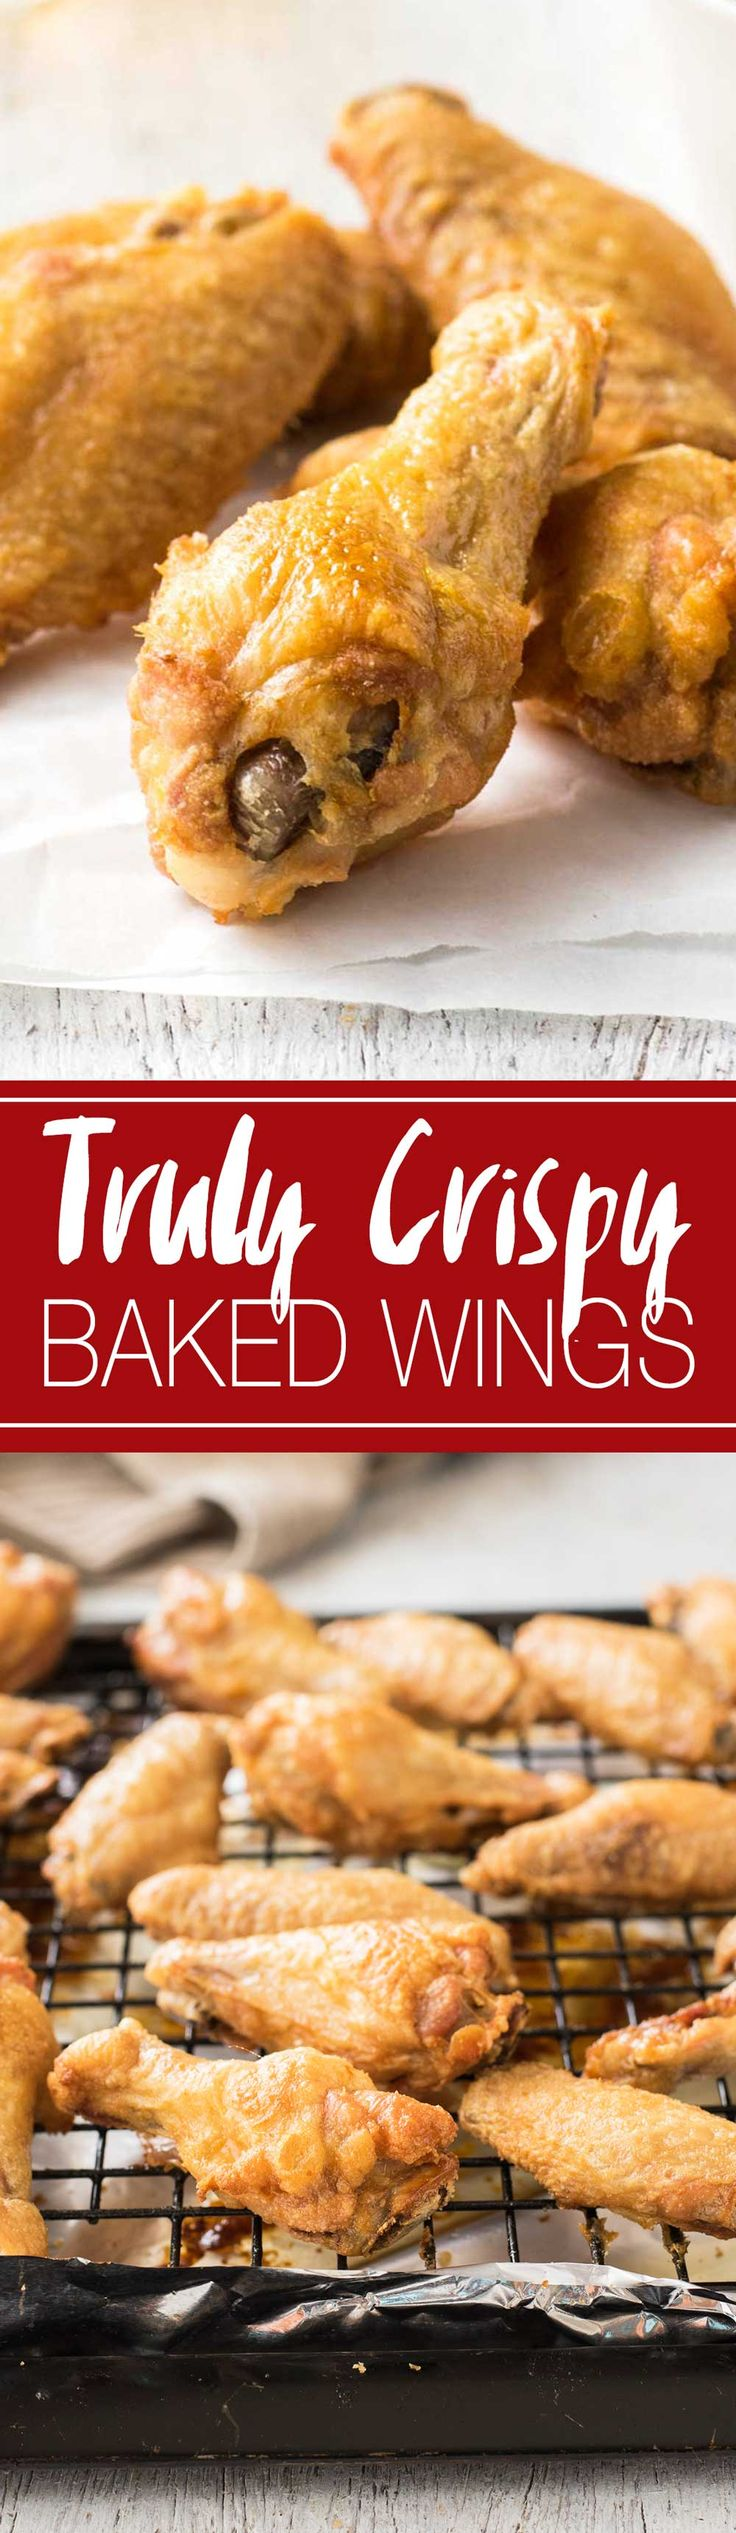 Truly Crispy BAKED Wings   I NEVER make wings any other way, these are incredible!!! They seriously come out sooooooooo CRISPY!!!